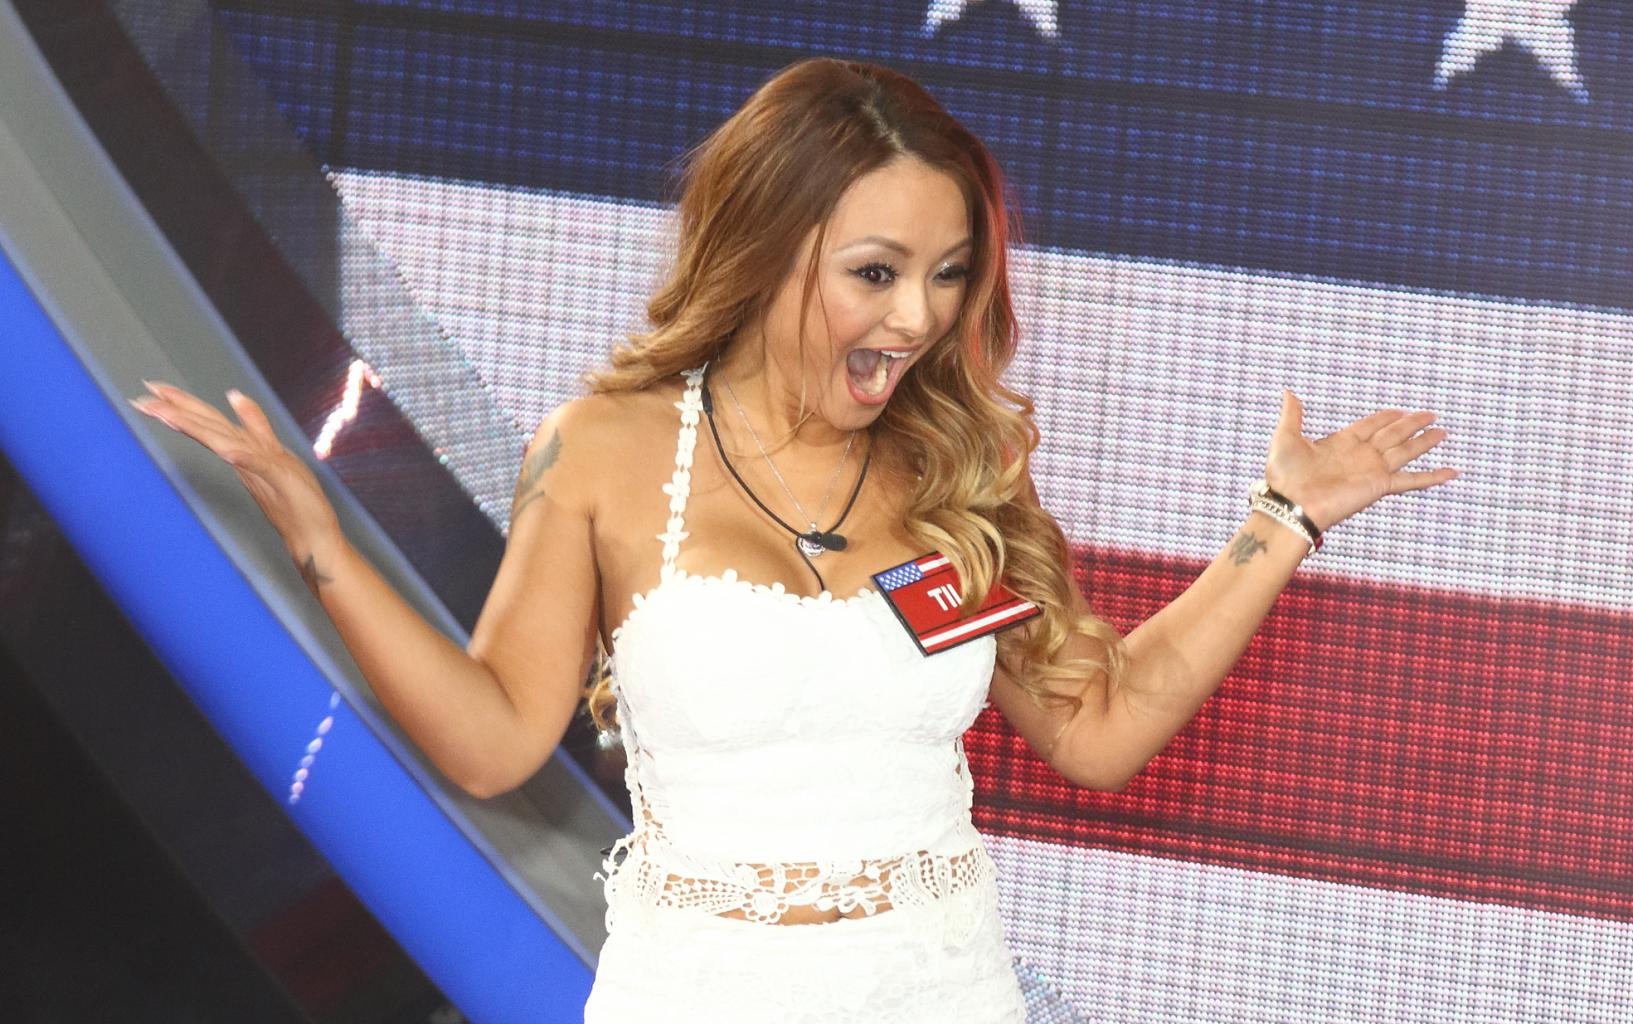 Former Reality Star Tila Tequila Banned From Twitter After Tweeting Pic Of    Sieg Heil '  Nazi Salute